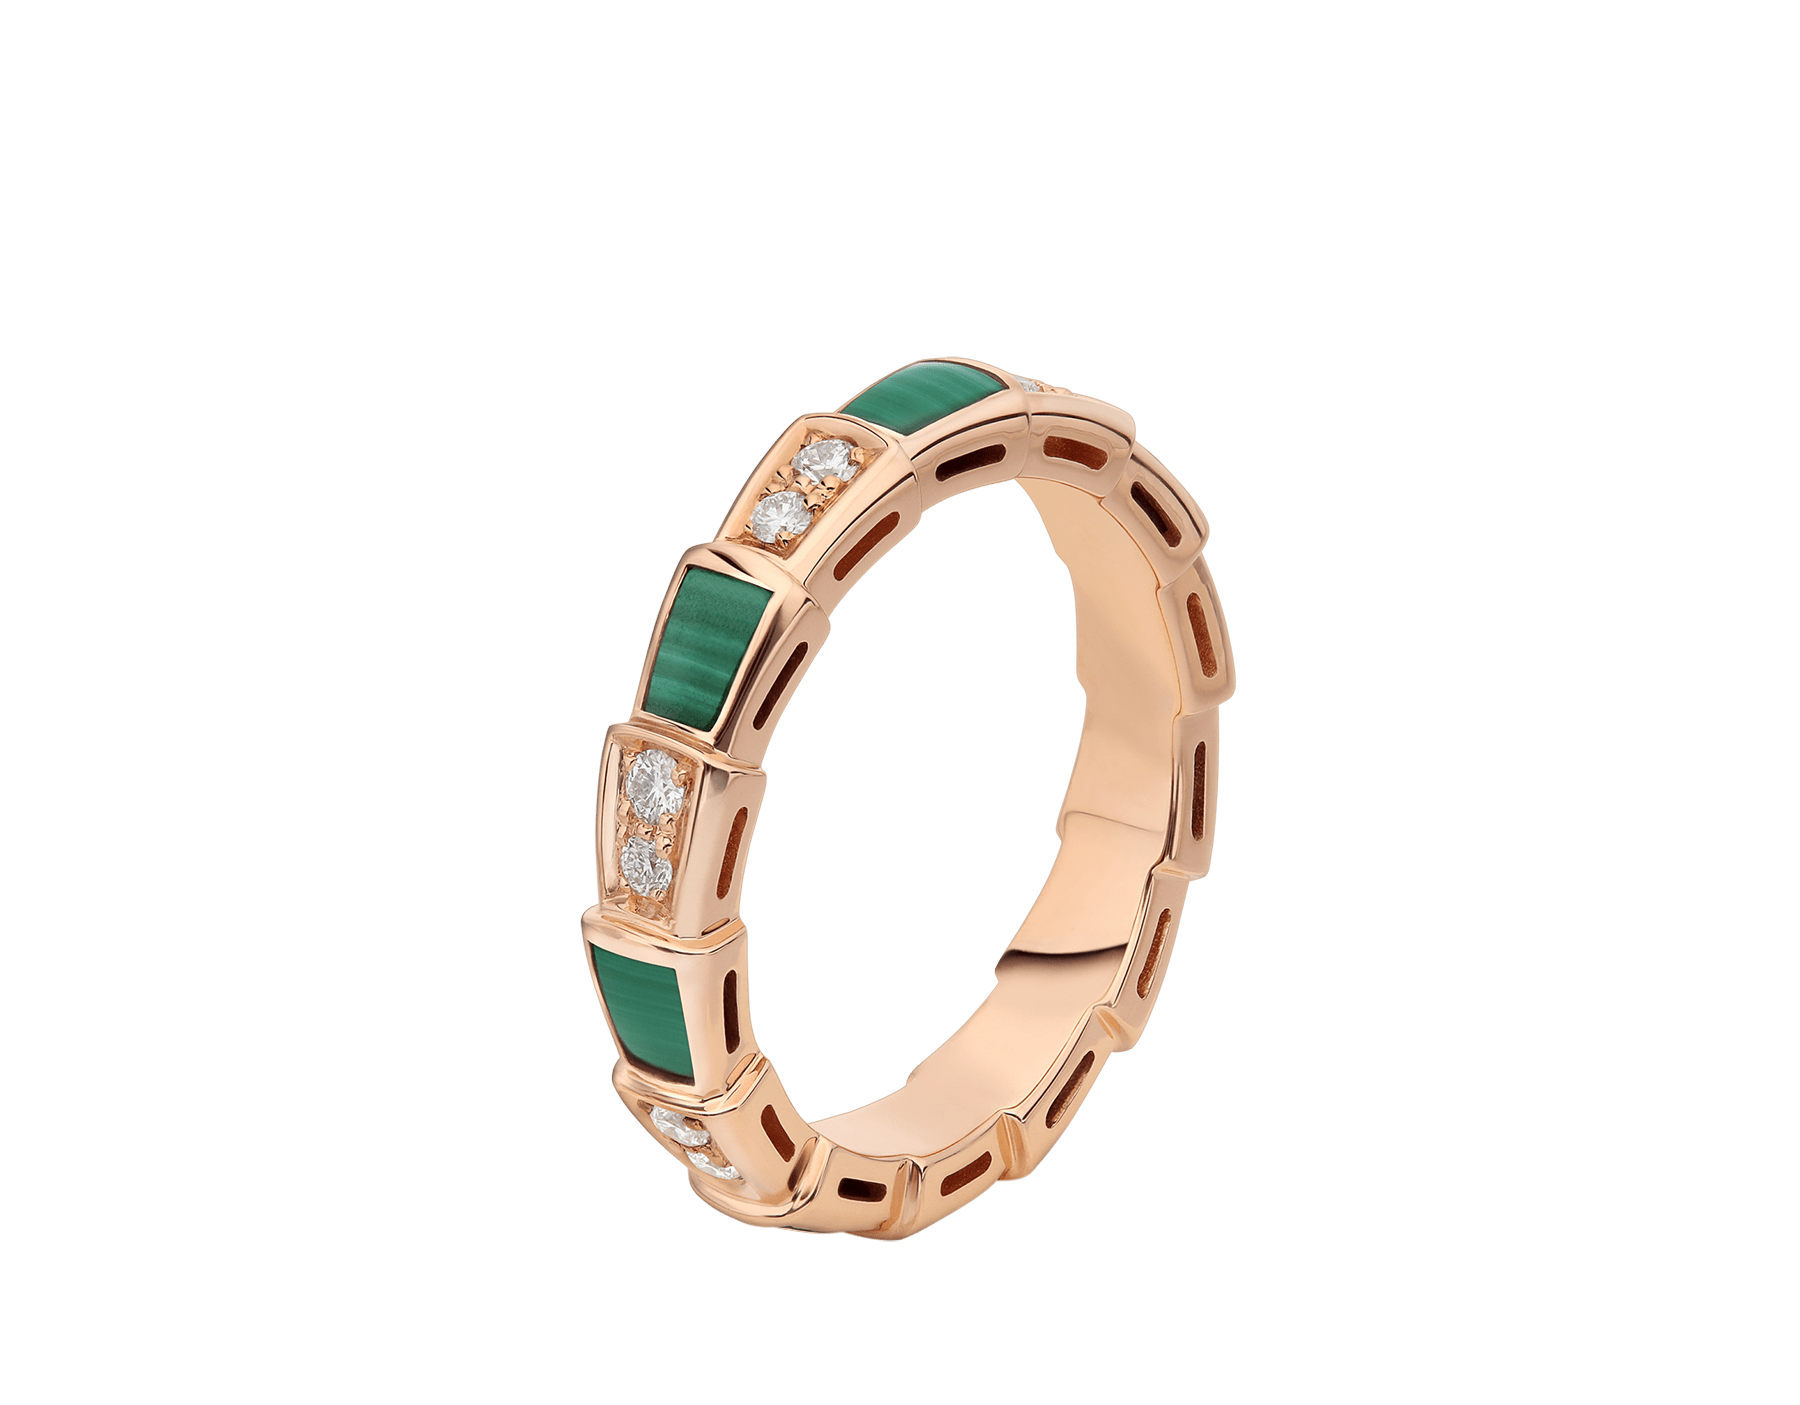 Bague fine Serpenti Viper en or rose 18 K sertie d'éléments en malachite, avec pavé diamants (0,20 ct) AN858752 image 1